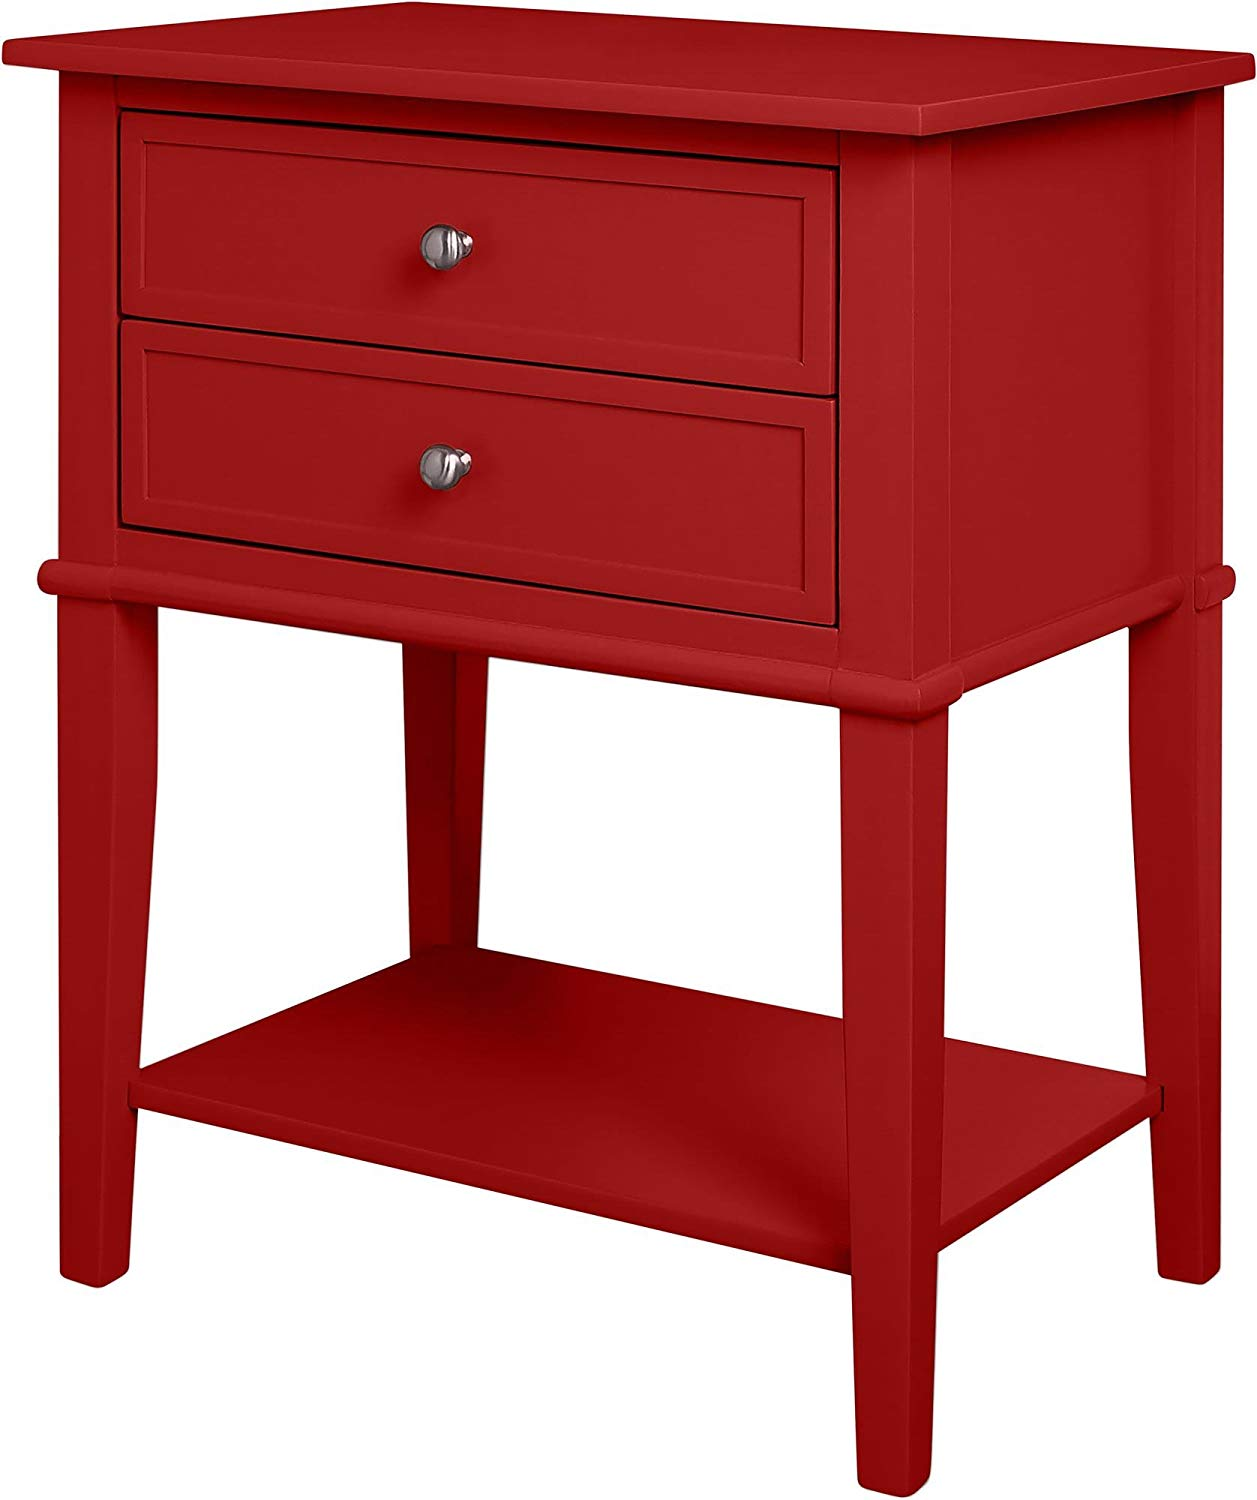 ameriwood home franklin accent table with drawers red kitchen dining hall chests and cabinets vinyl floor threshold west elm lamp shades bunnings outdoor drawer chest glass coffee